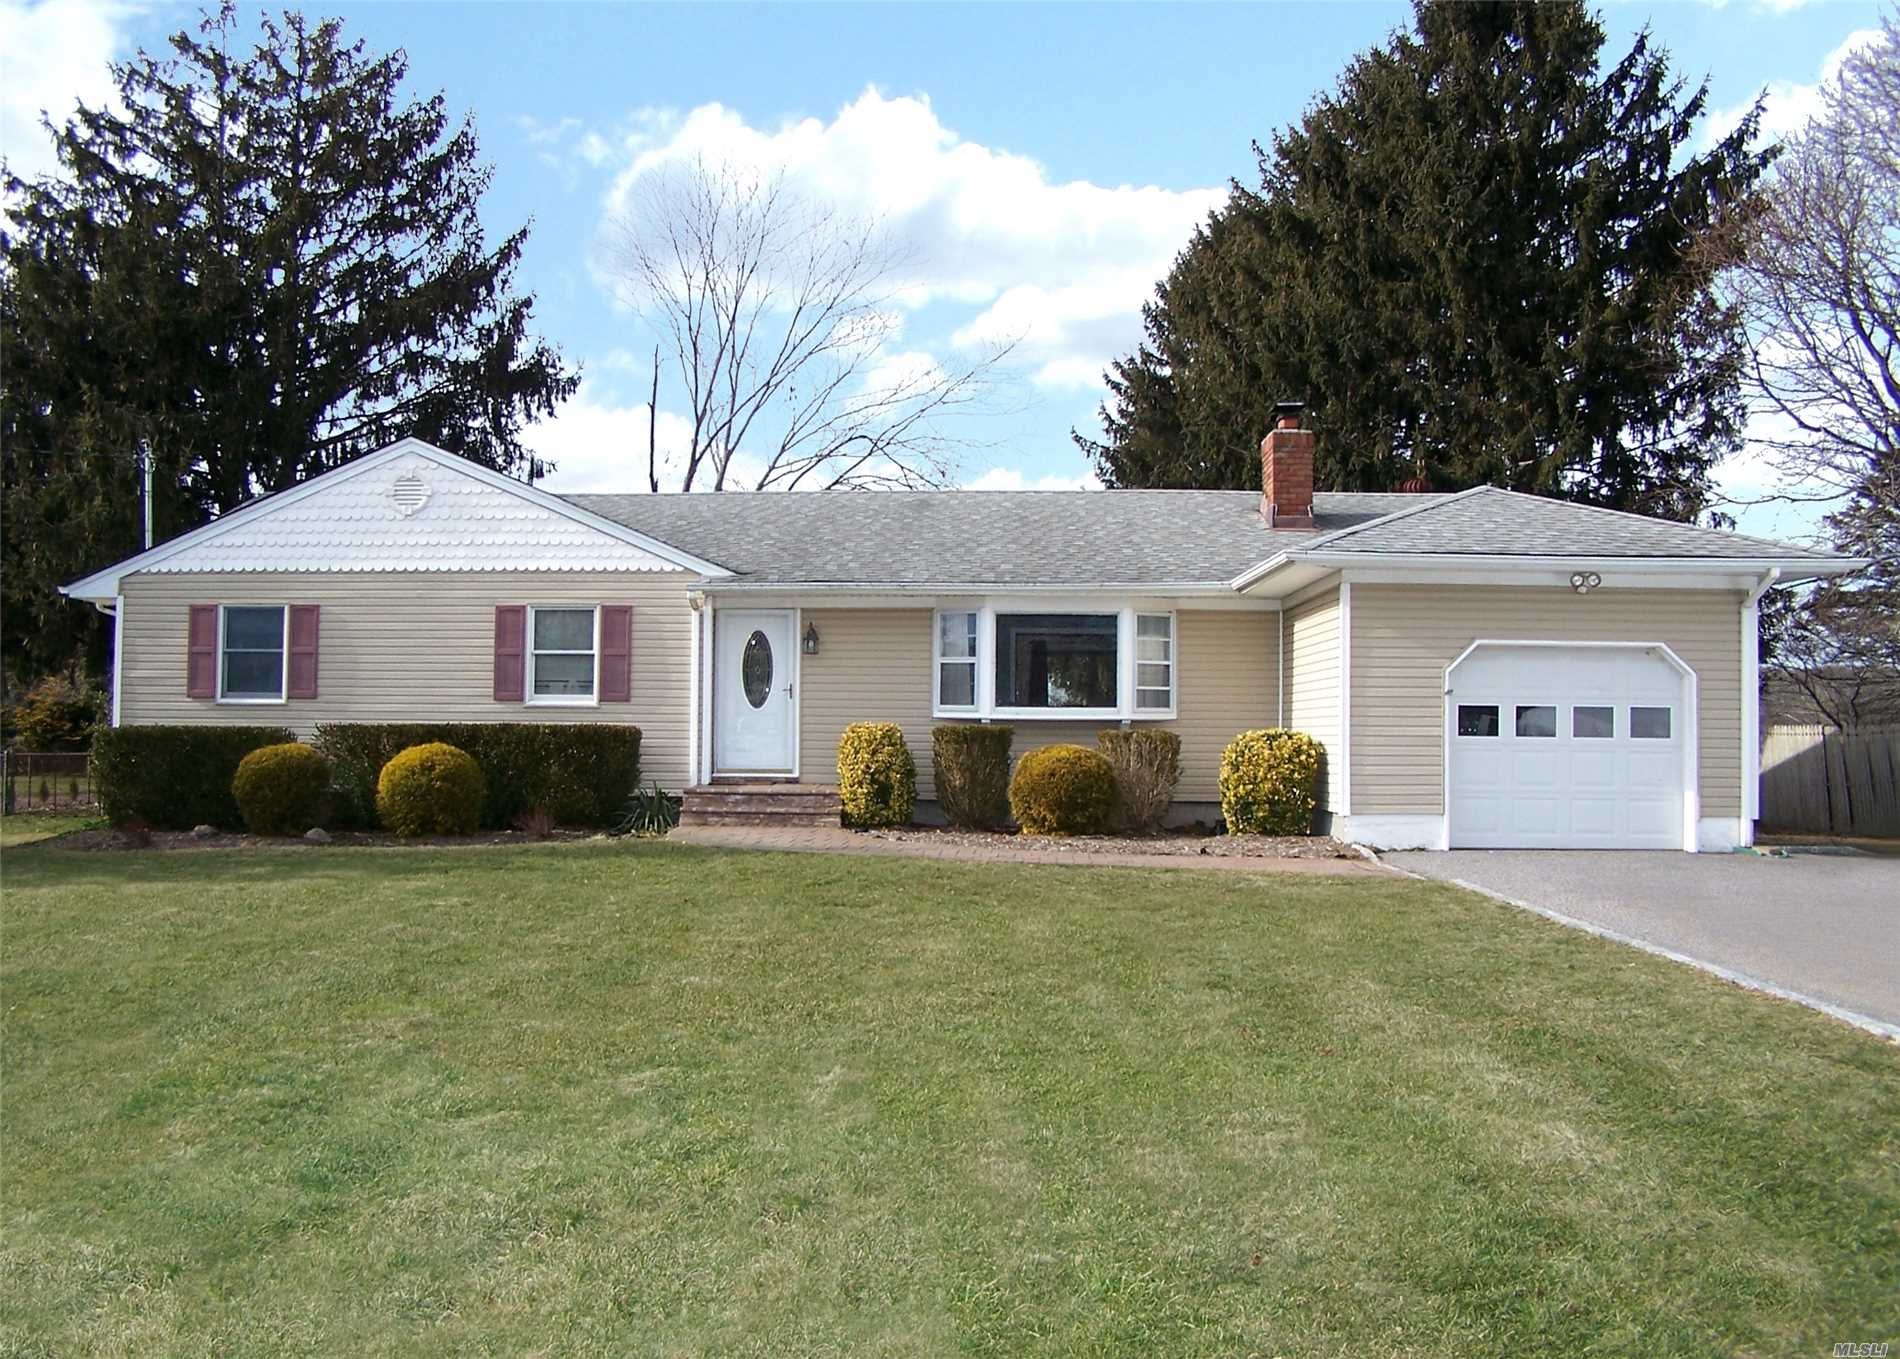 *Buyer's incentive- $5000 credit for closing costs for any accepted offers now through Sun 3/17. Move In Ready 3 Bedroom Ranch In Historic, Southampton Side Of Eastport. This Beautiful Home Features A Newly Painted Lr, Dr, Den And Newly Updated Kitchen Which Features Granite Countertops, Ss Appliances, Breakfast Bar, Hardwood Floors Throughout, A Beautiful Brick Fireplace, Garage, Partially Finished Basement. Taxes With Star Under $8000, Boat Slip And Ramp At End Of Road. Minutes From Hamptons.